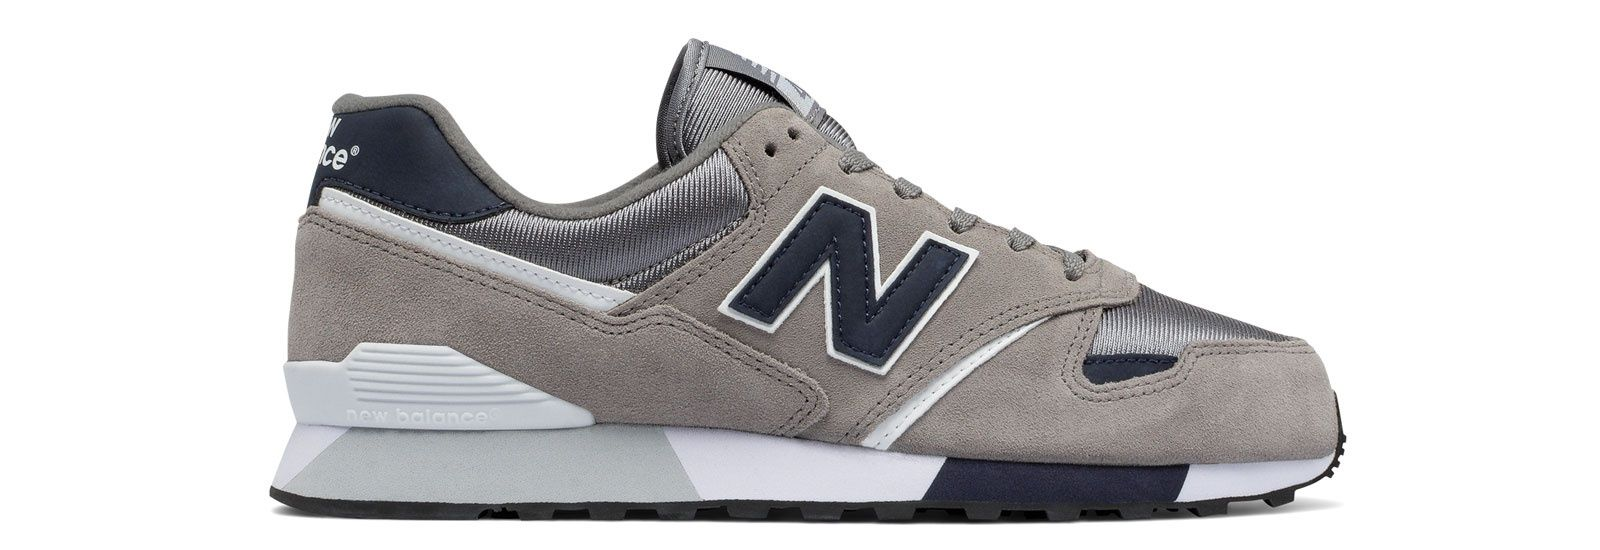 new balance 446 sneakers